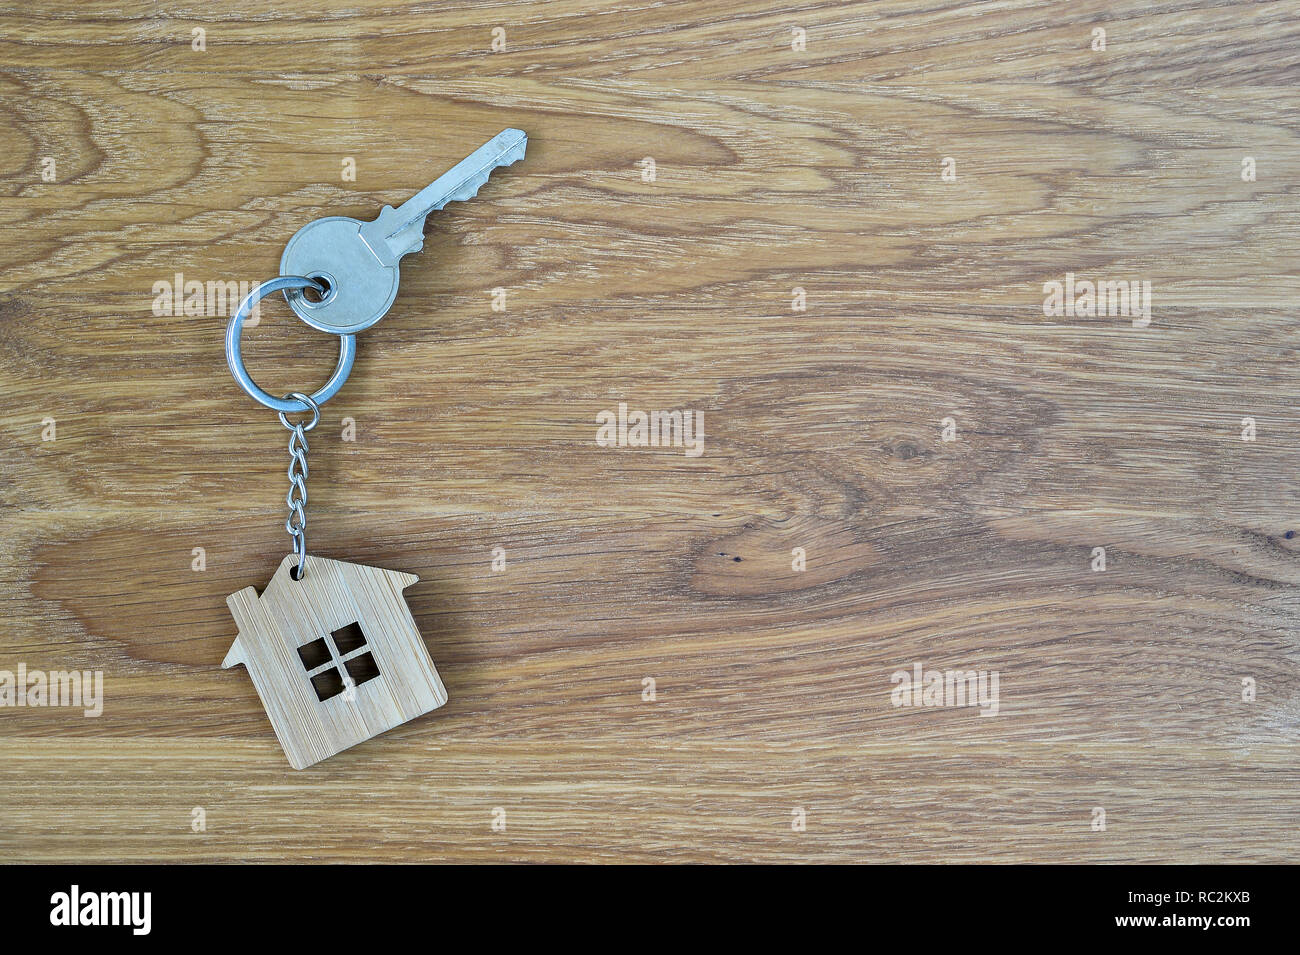 Metal house lock key in the form of bamboo keychain on wooden oak background. Real estate purchase offer concept. Copy space. - Stock Image